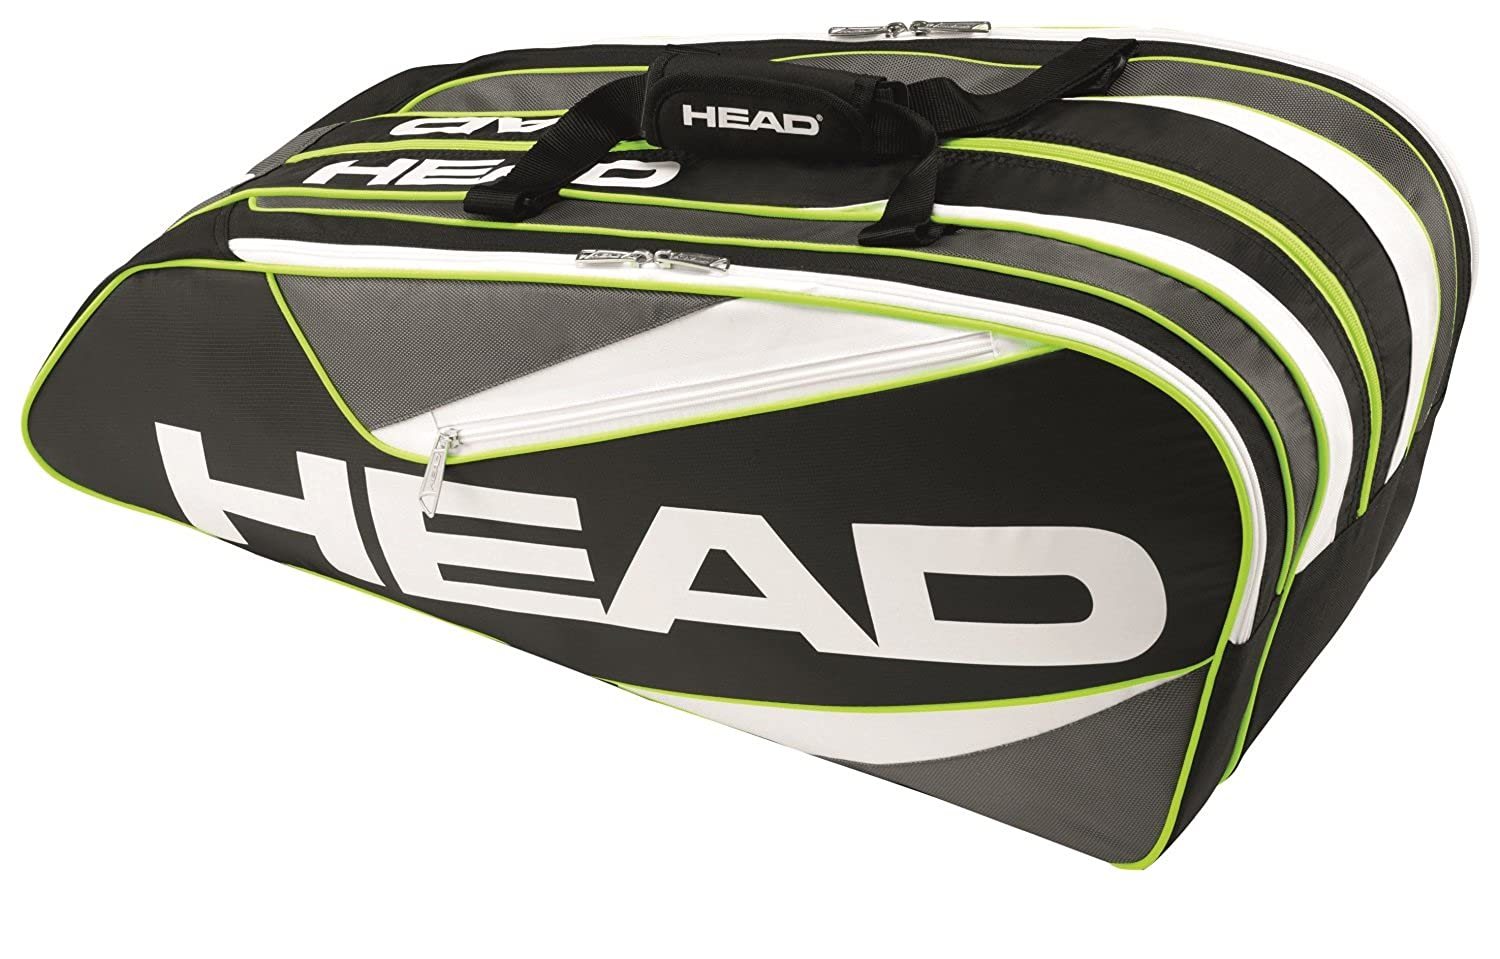 Amazon.com: HEAD Elite 6R Supercombi Tennis Bag, Black ...